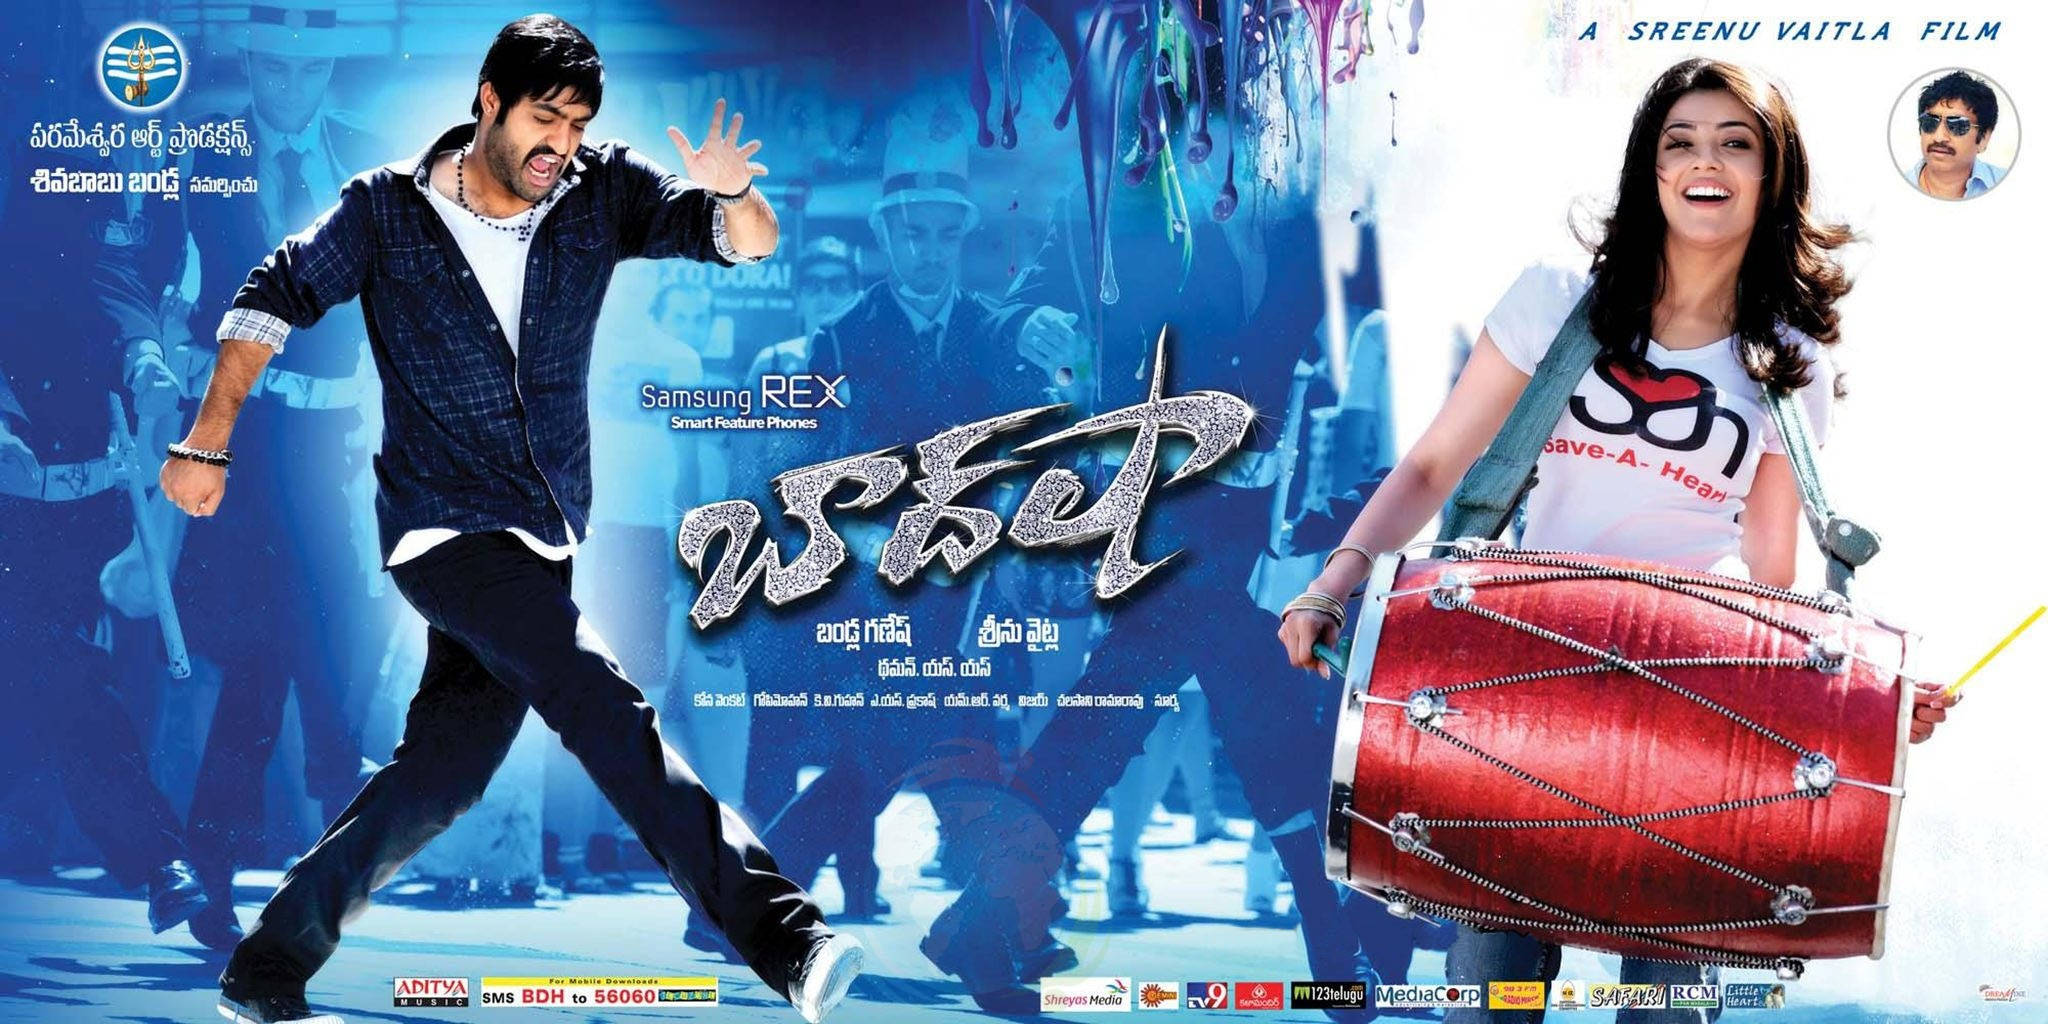 pic new posts: Ntr Wallpapers In Badshah Baadshah 2013 Posters